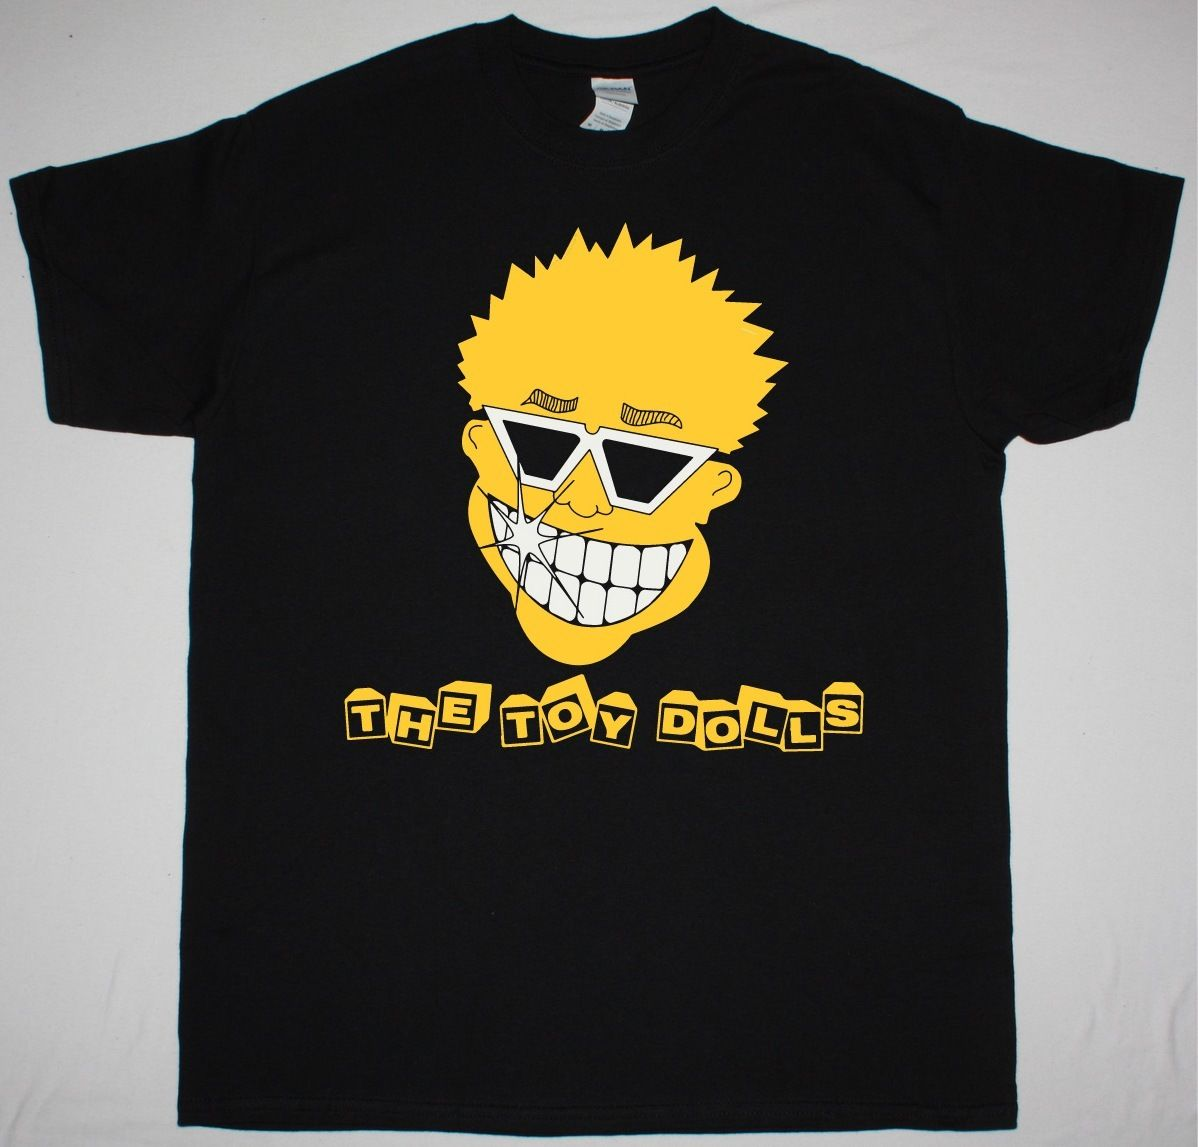 doll trottla doll pussy THE TOY DOLLS SMILEY FACE PUNK GBH SHAM69 UK SUBS THE ADICTS NEW BLACK T-